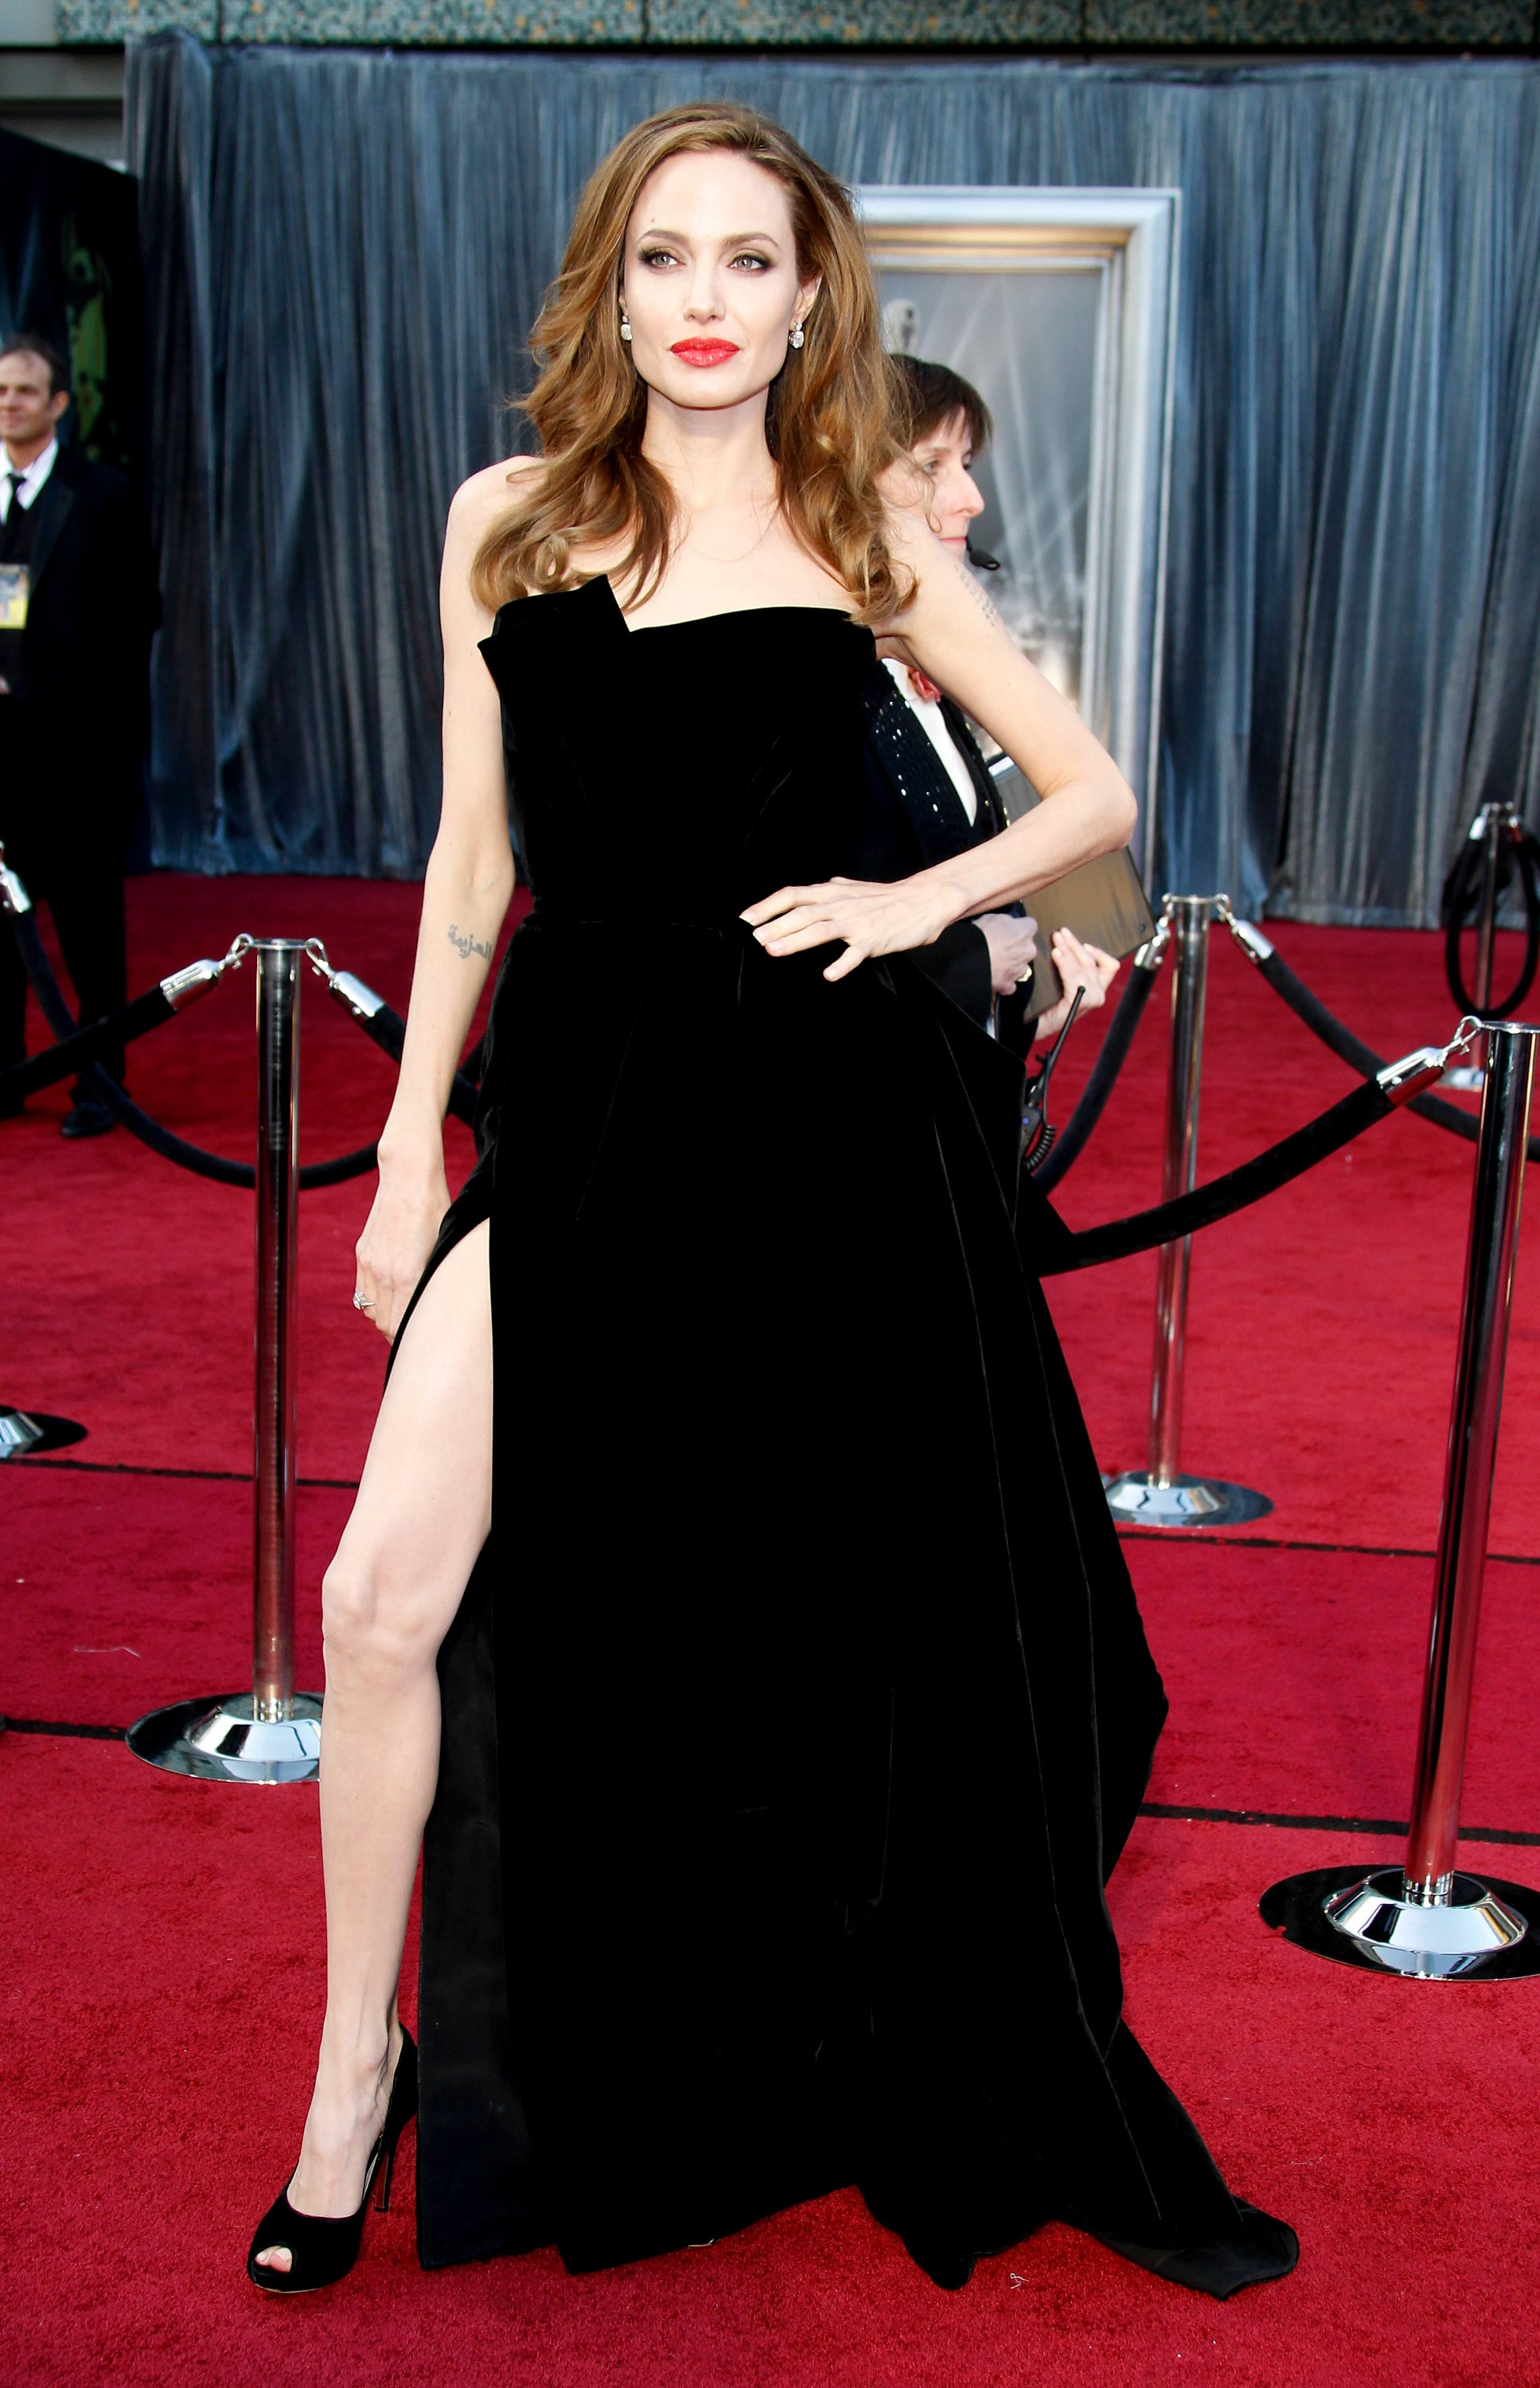 Angelina Jolie in Versace at the Oscars